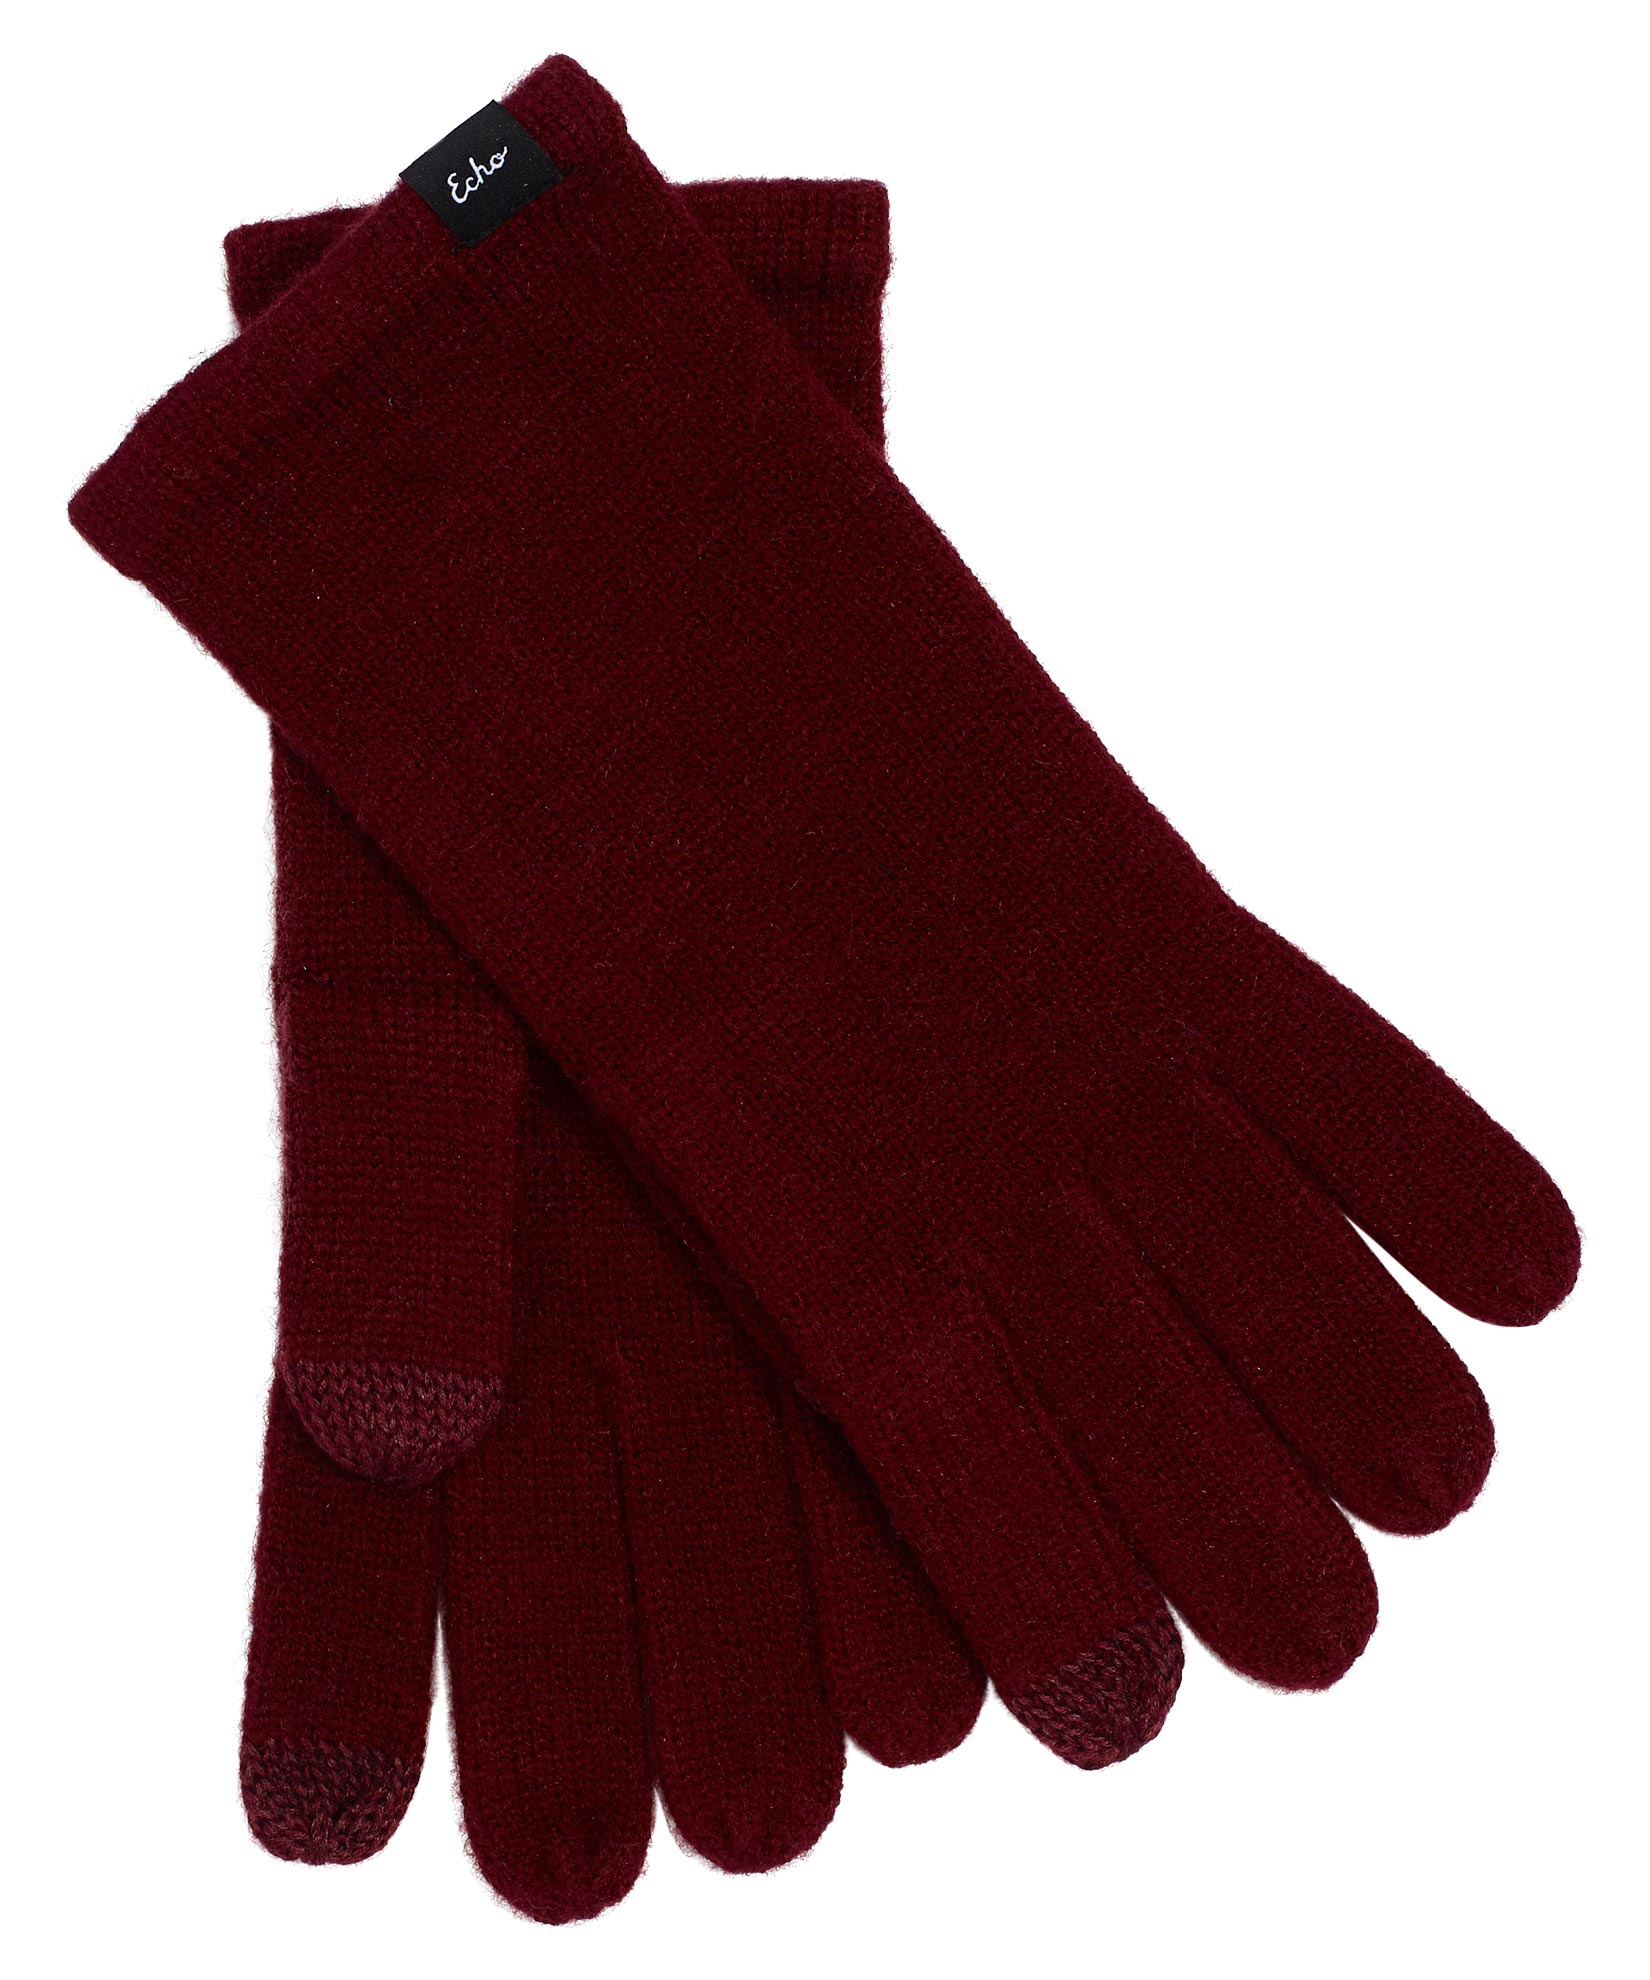 Garnet - Echo Knit Touch Glove